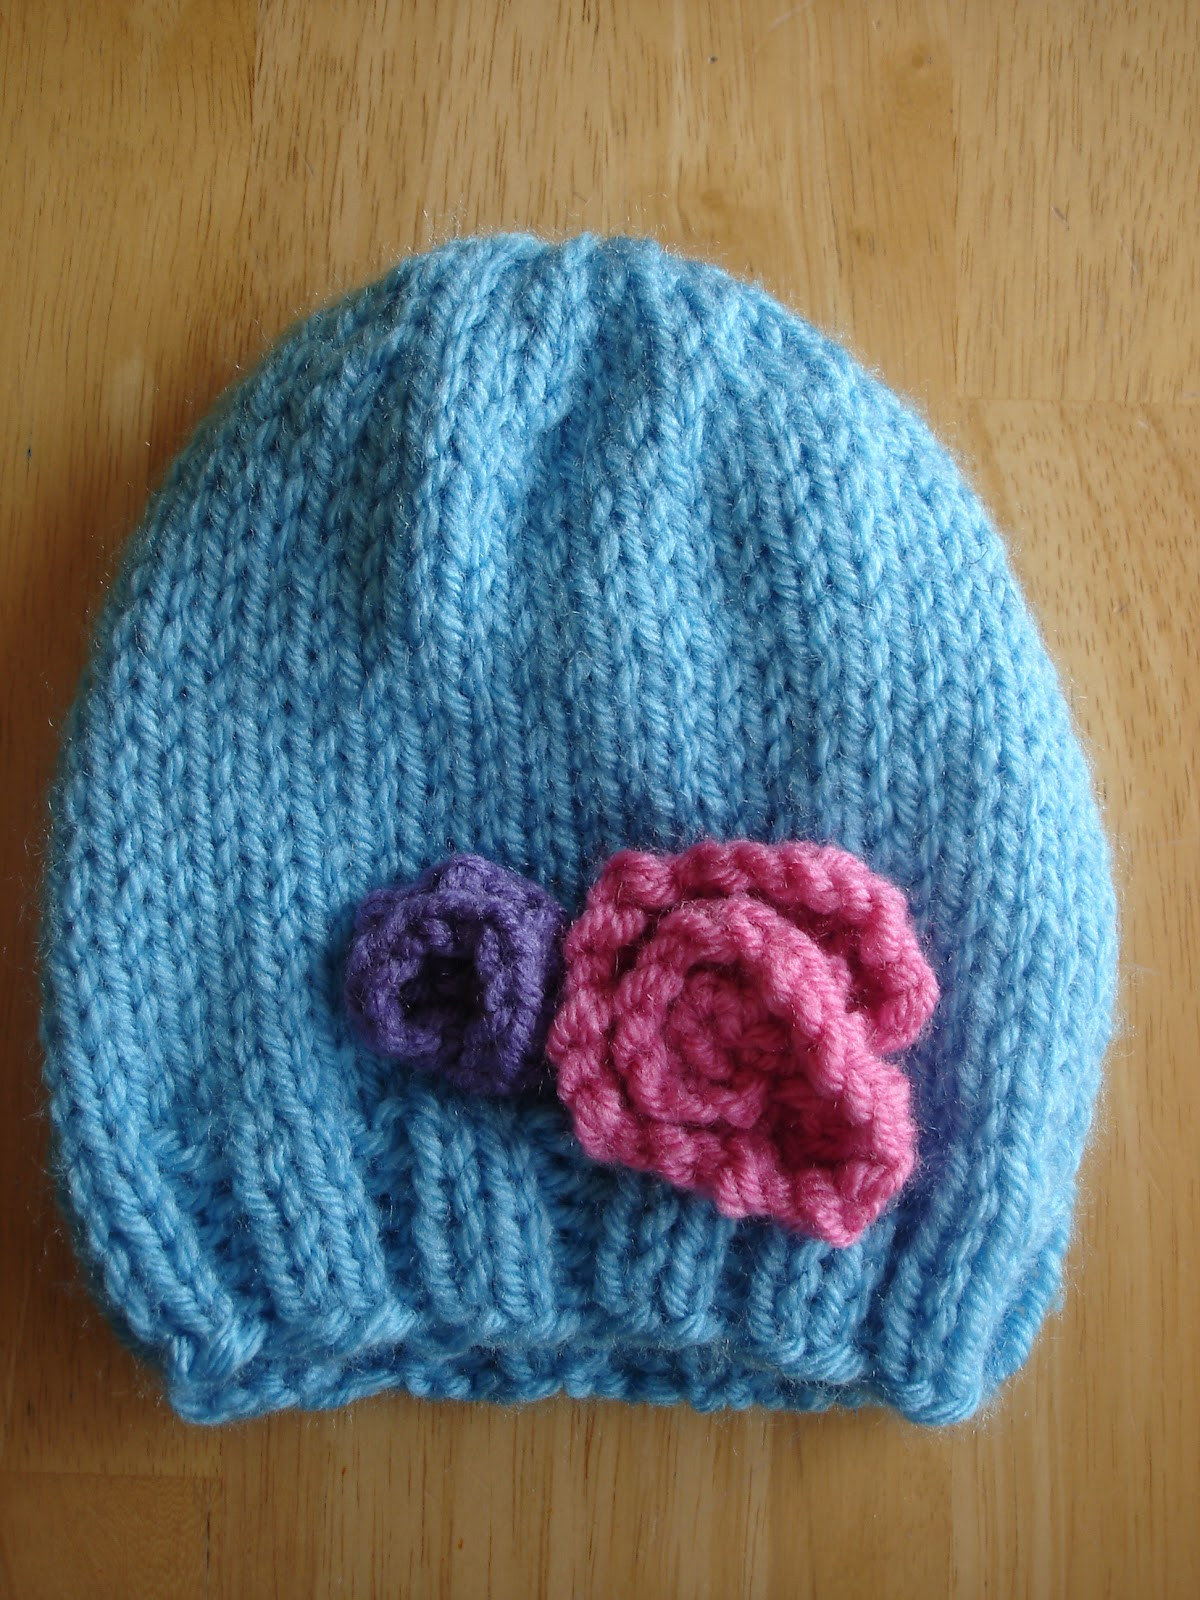 Free Knitting Patterns for Baby Hats Elegant Fiber Flux Free Knitting Pattern Baby In Bloom Hats Of Perfect 44 Models Free Knitting Patterns for Baby Hats